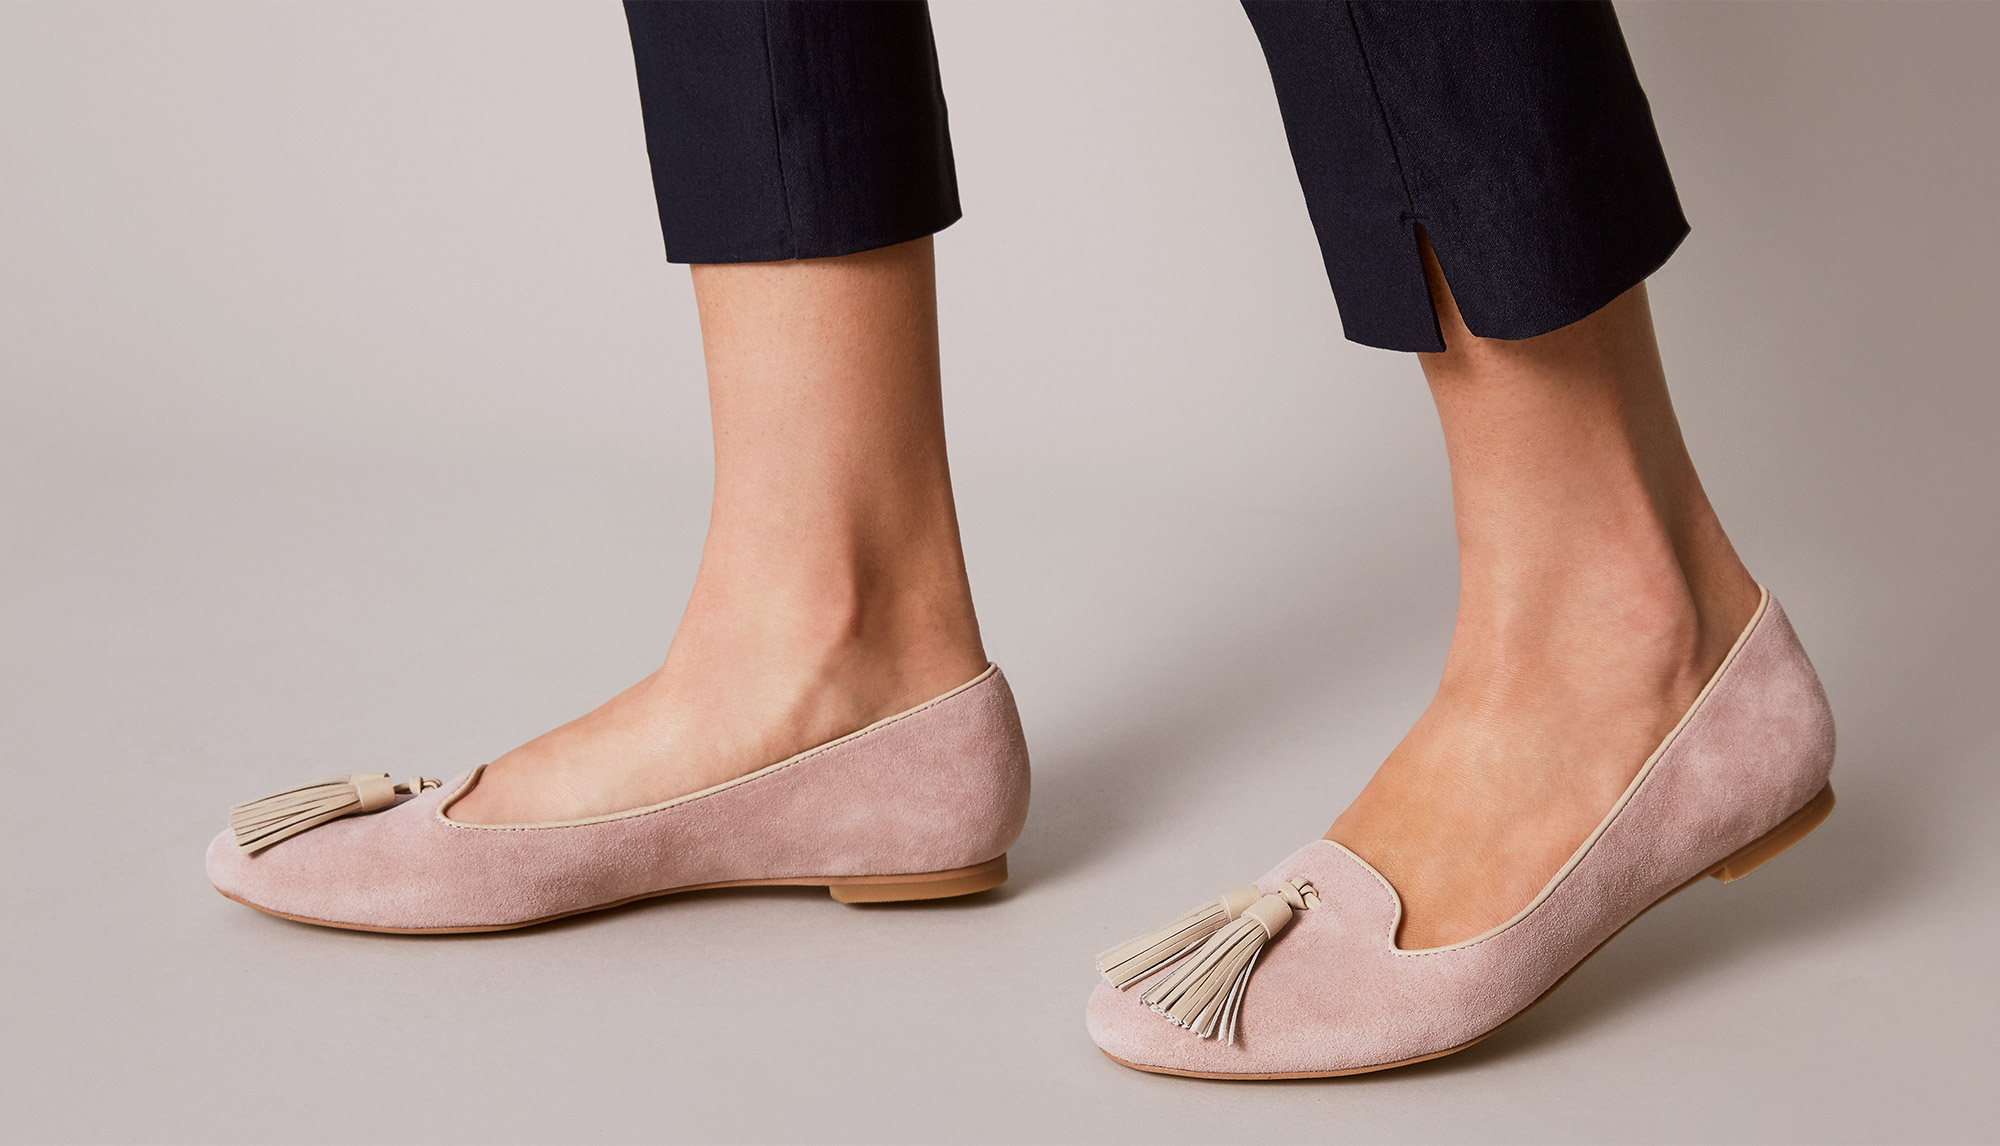 How to stretch pink suede shoes